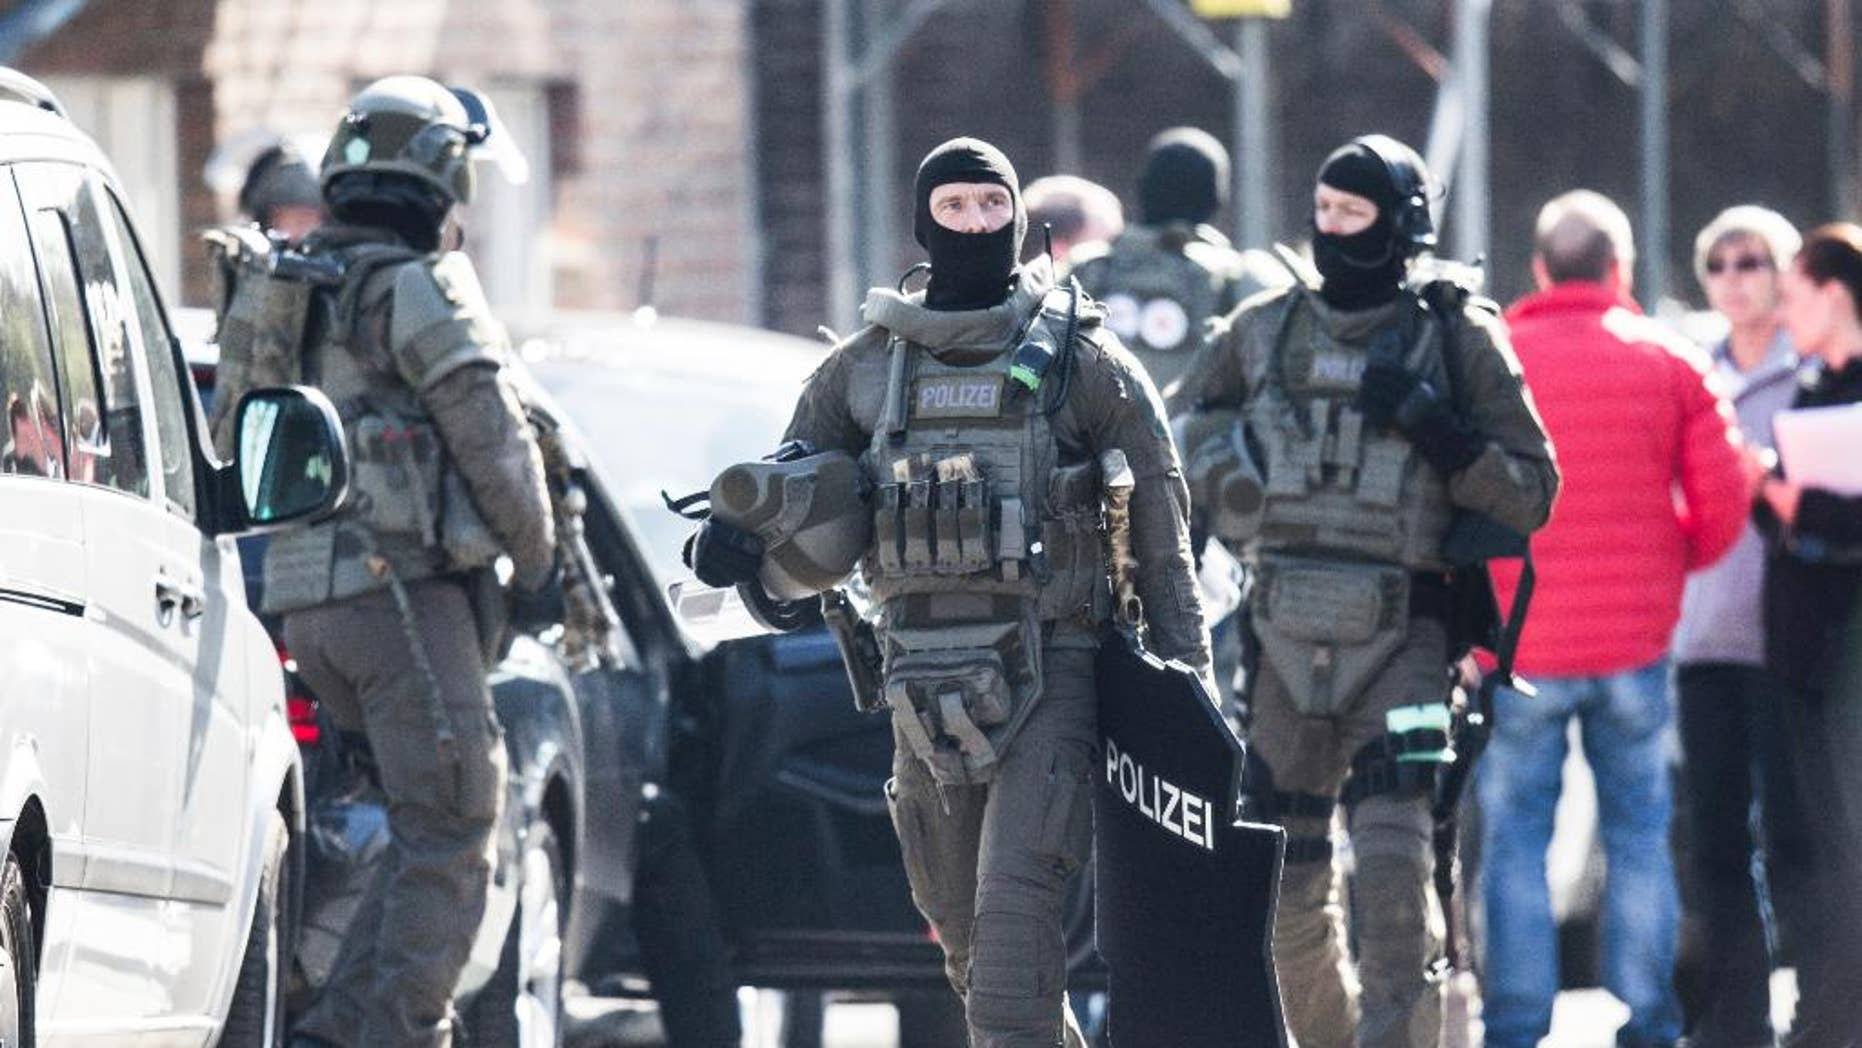 Officers of the special forces walk on a street in Duisburg, Germany, Thursday, March 16, 2017. An armed man robbed a bank on Thursday morning in Duisburg. According to first insights of the police, the man is still inside the building together with two employees. (Marcel Kusch/dpa via AP)